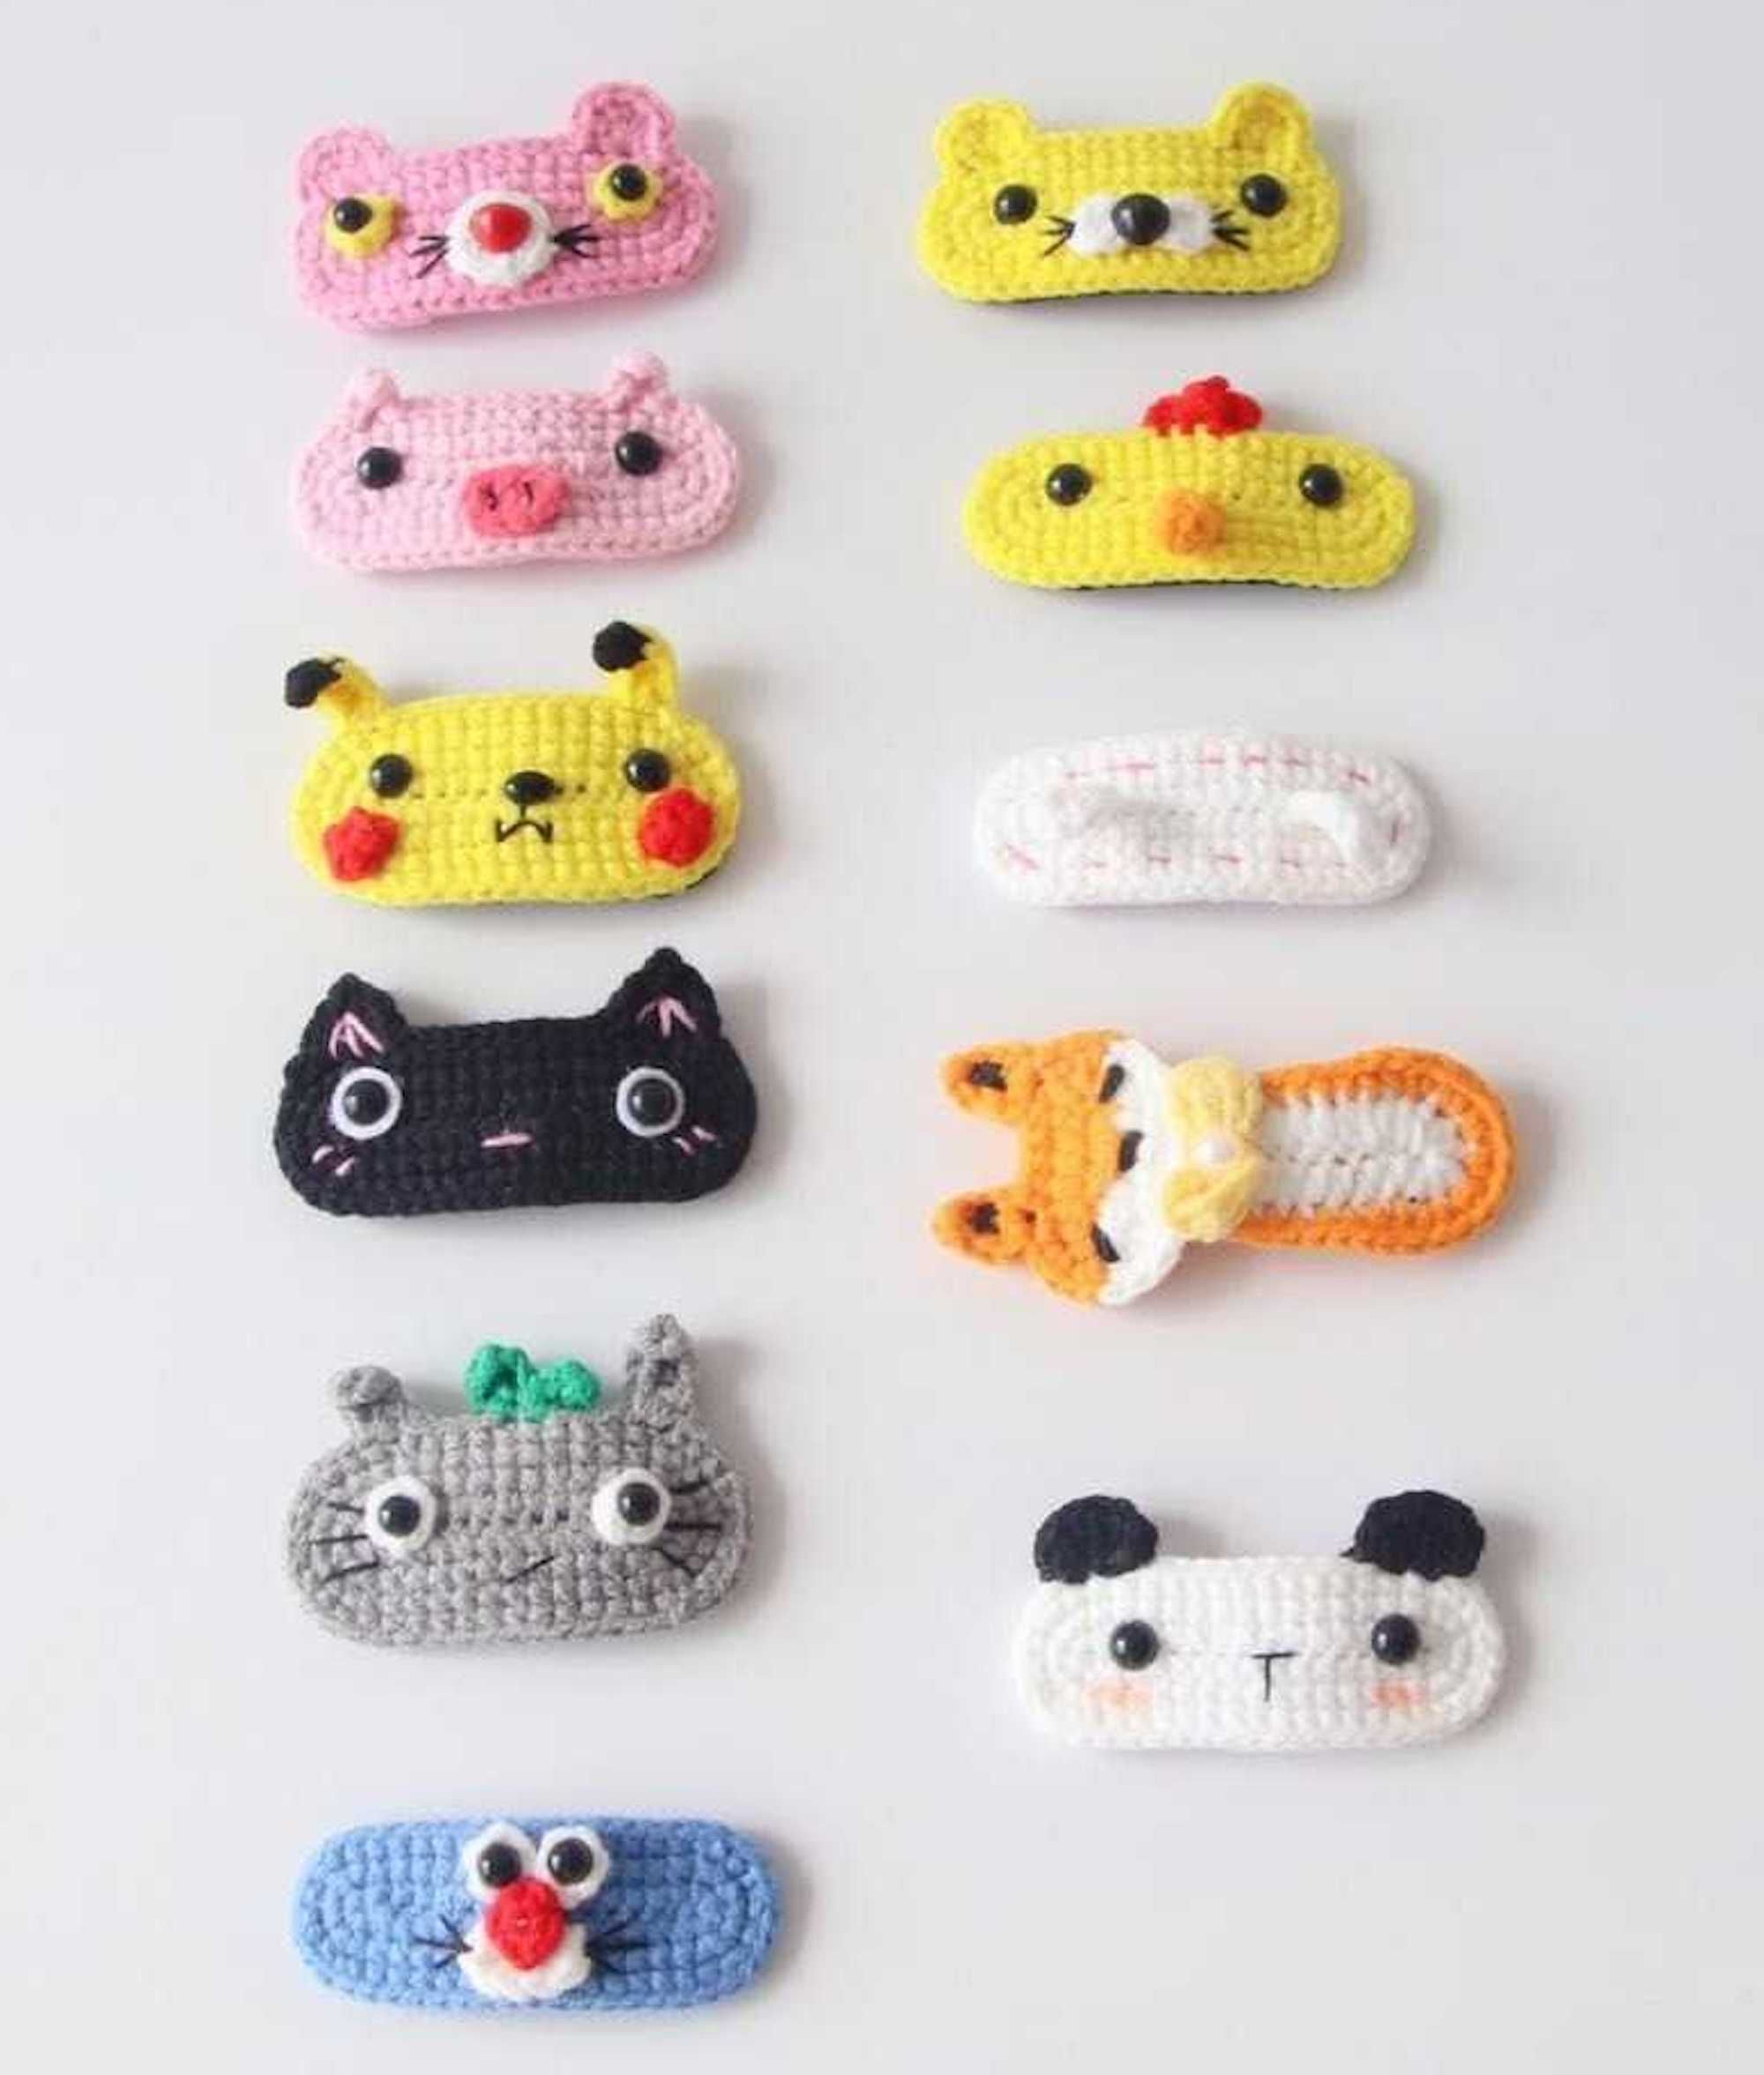 Crochet cute hair clips for toddlers Ladies hair clips Handmade embroidery Knit hair clips